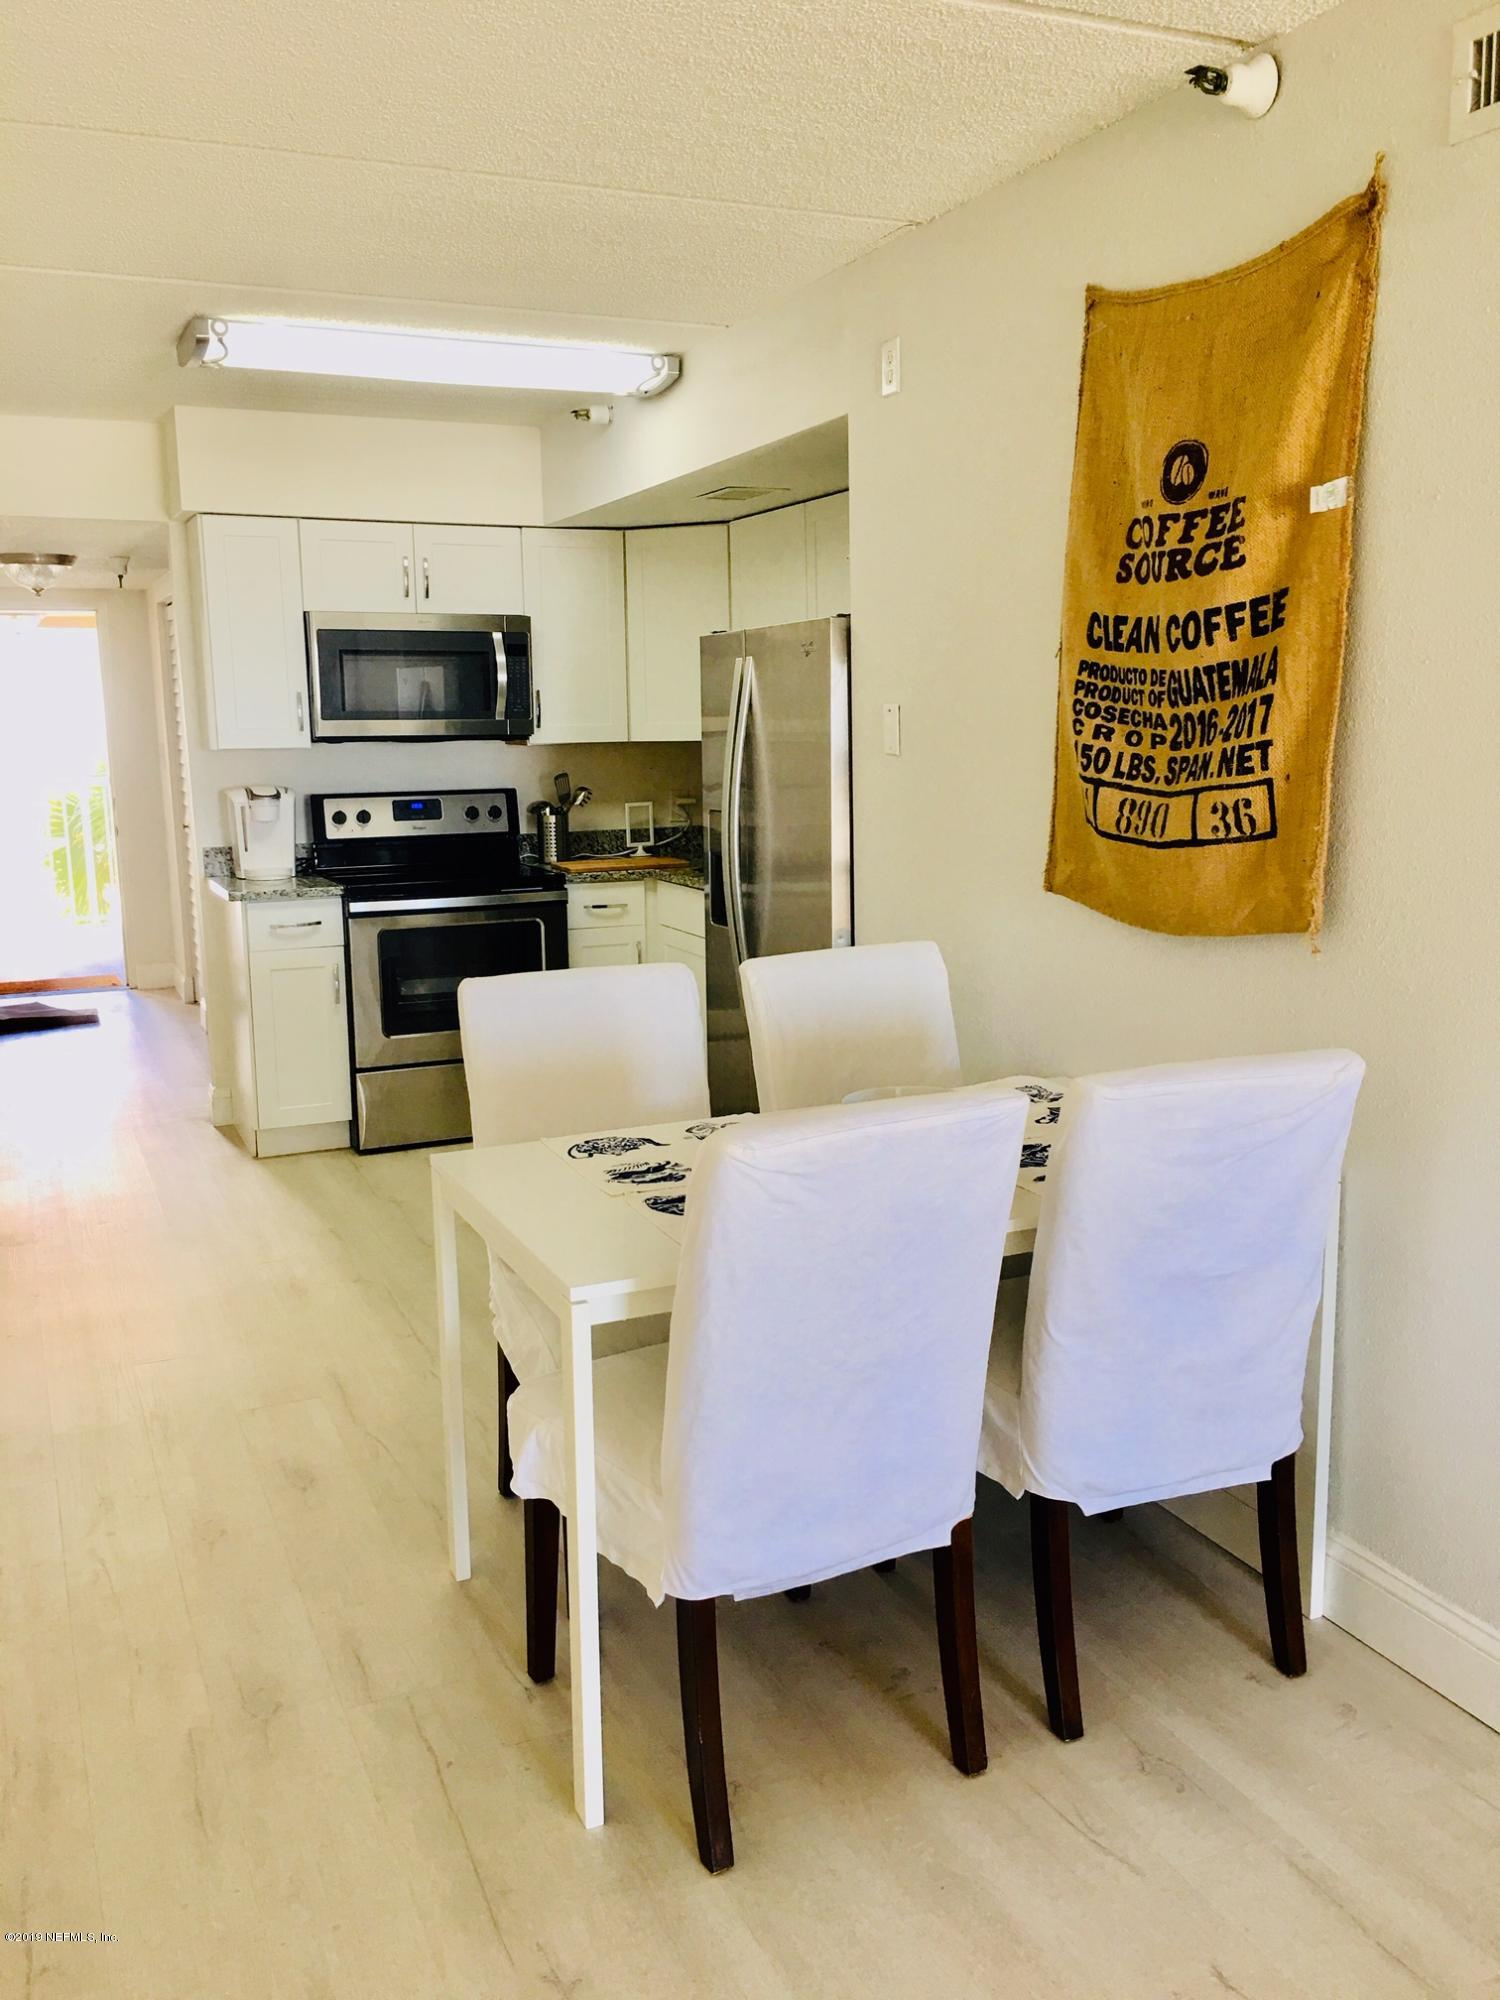 10 11TH, JACKSONVILLE BEACH, FLORIDA 32250, 2 Bedrooms Bedrooms, ,2 BathroomsBathrooms,Residential - condos/townhomes,For sale,11TH,973065